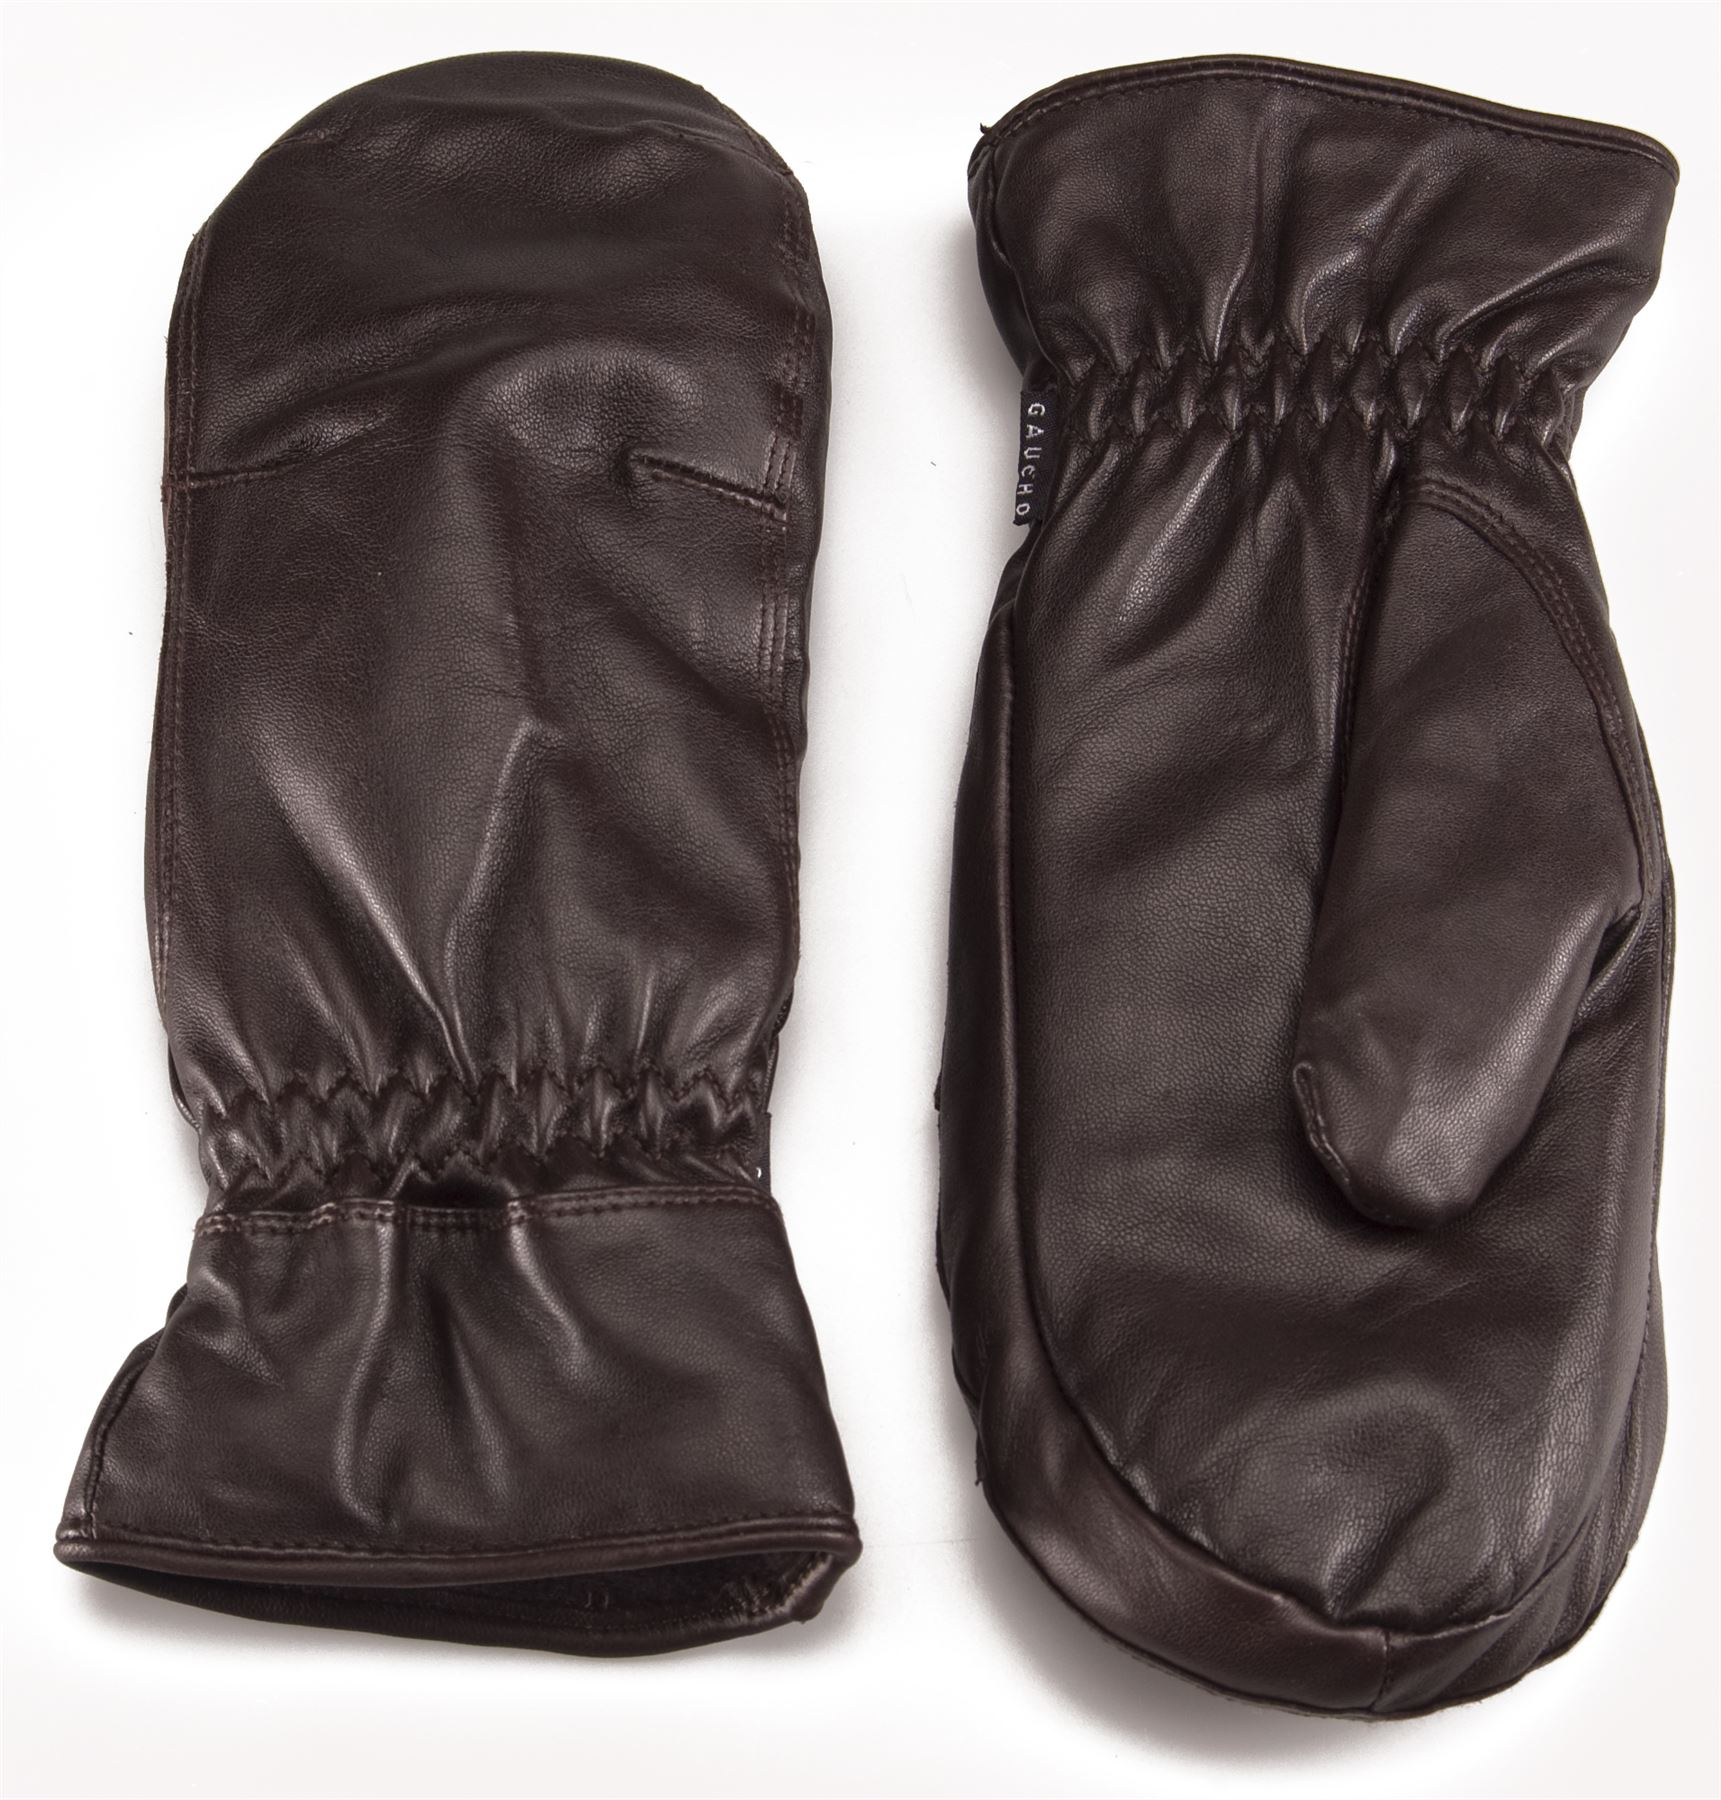 Womens leather gloves au - Gaucho Ladies Leather Mittens Gloves Primaloft Insulation Womens